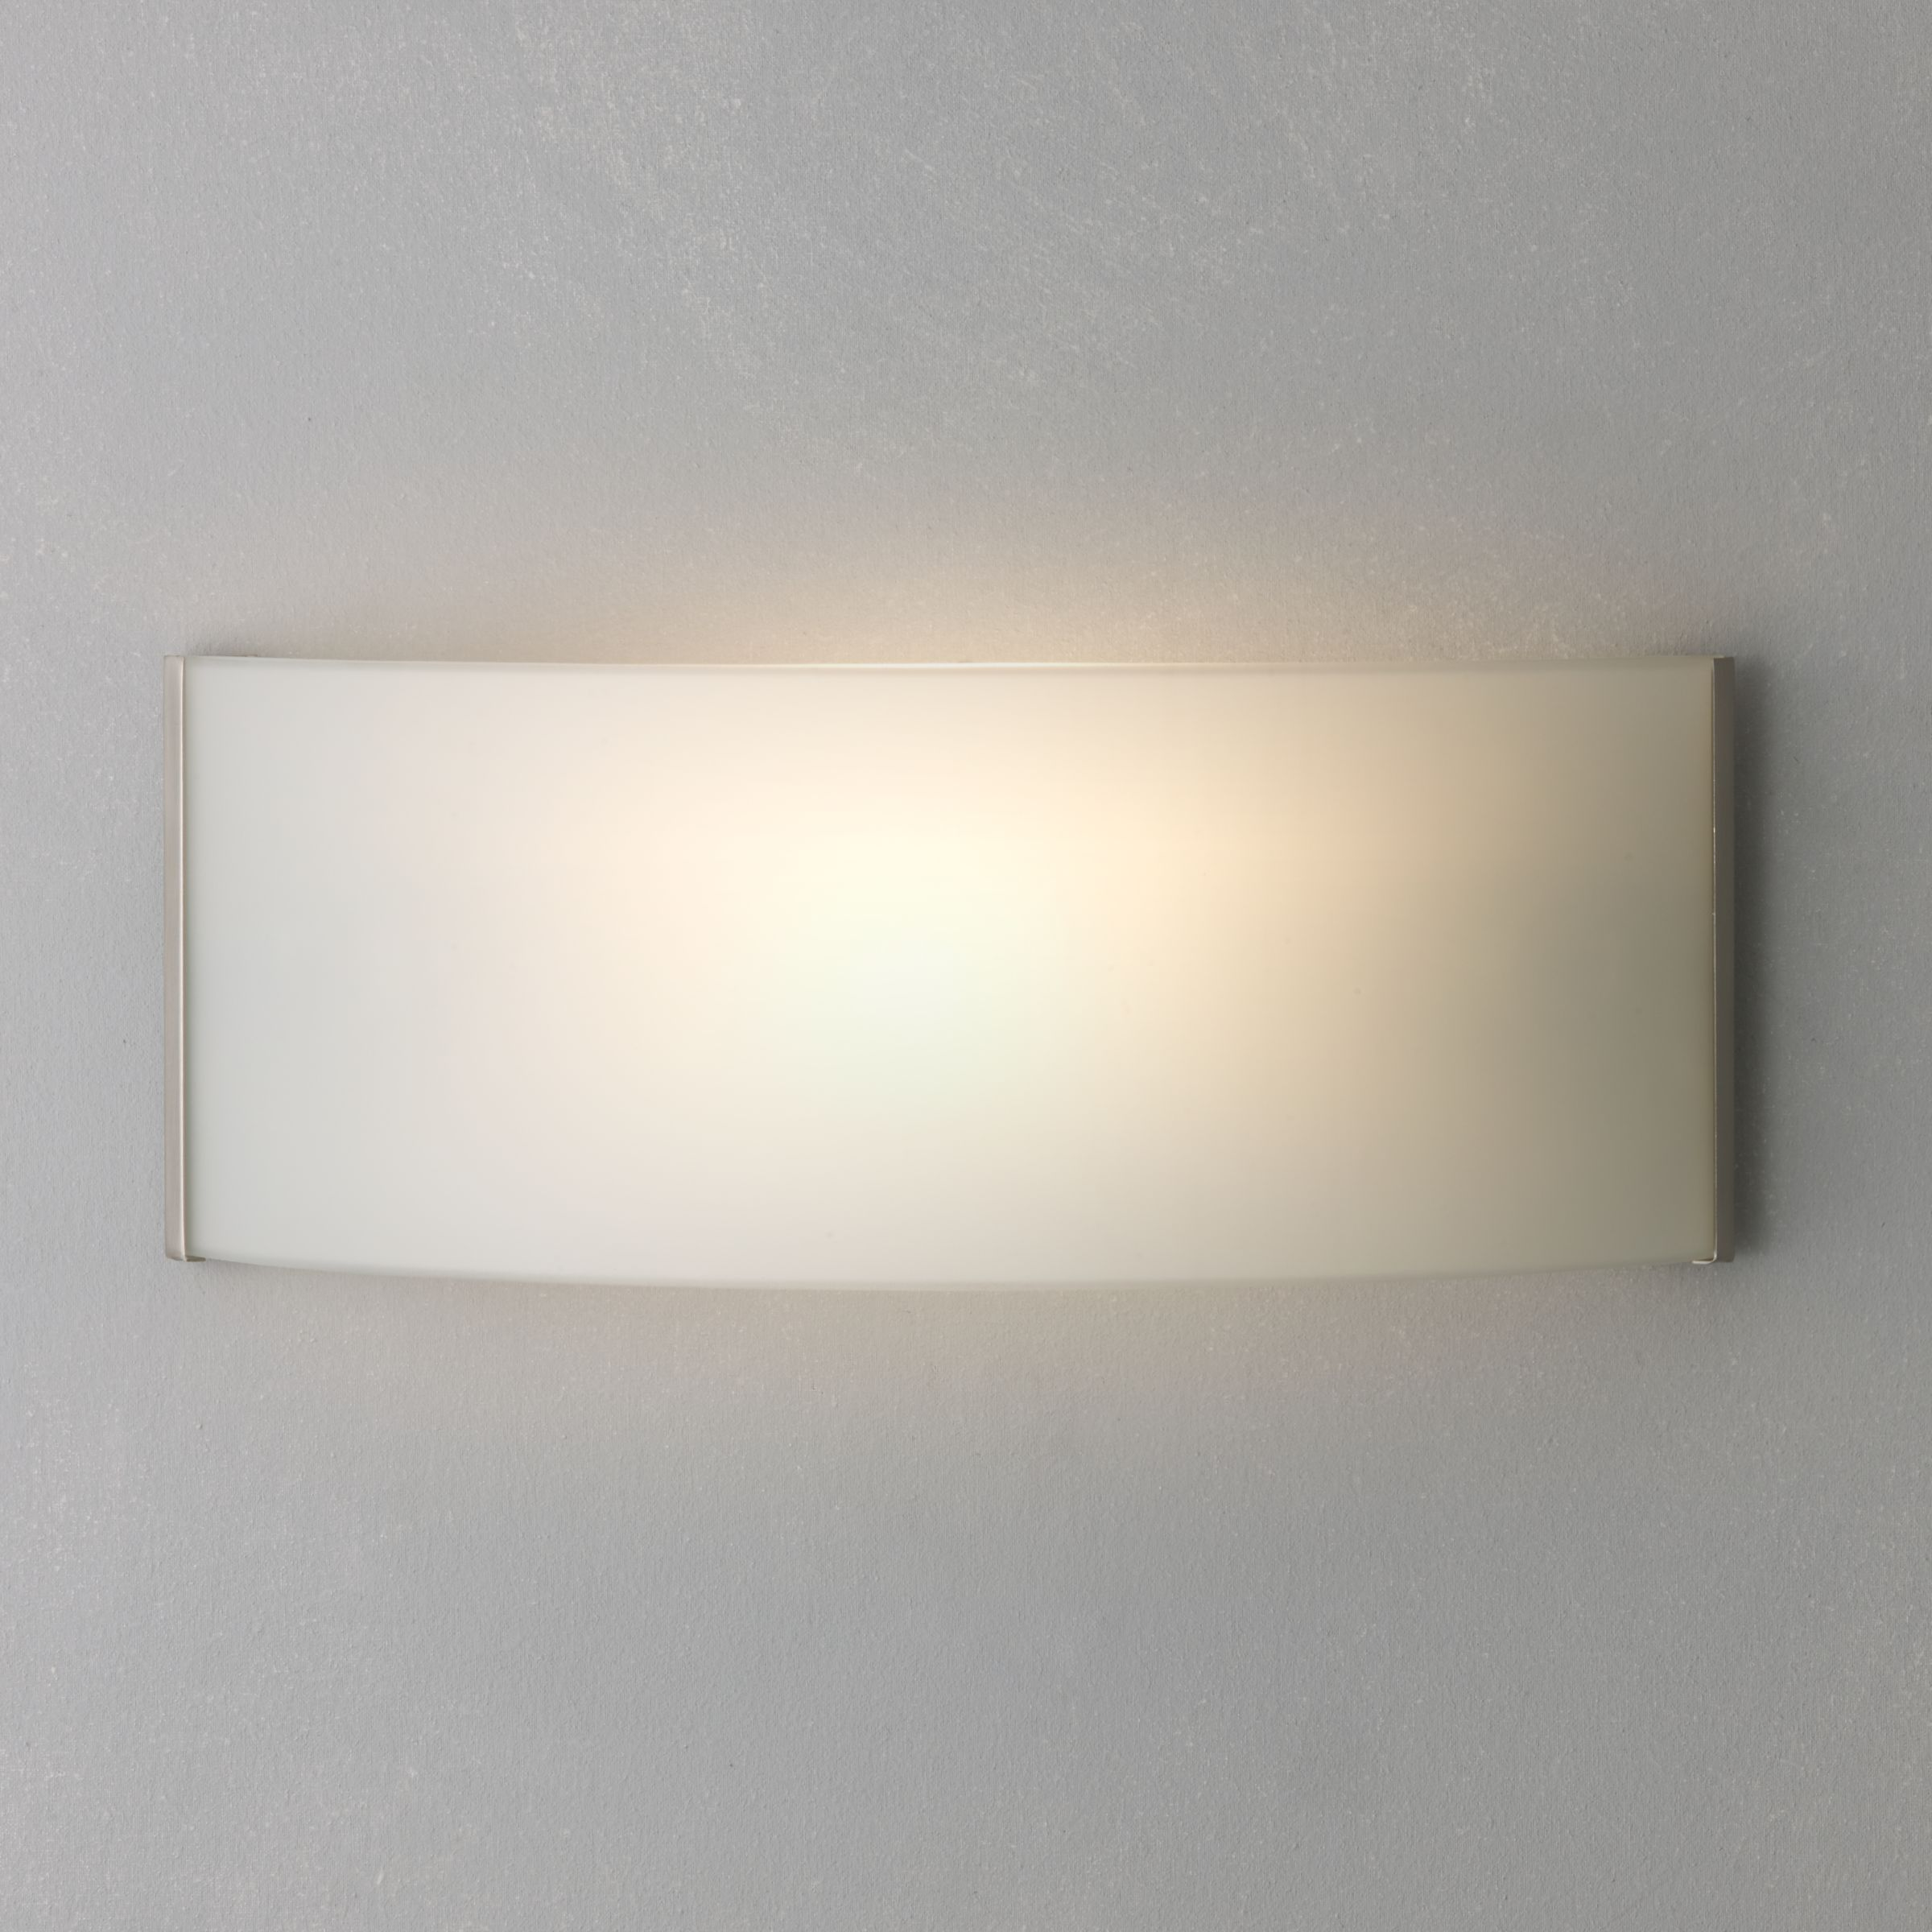 John Lewis Wall Lights Glass : Buy John Lewis Rollo Wall Light John Lewis